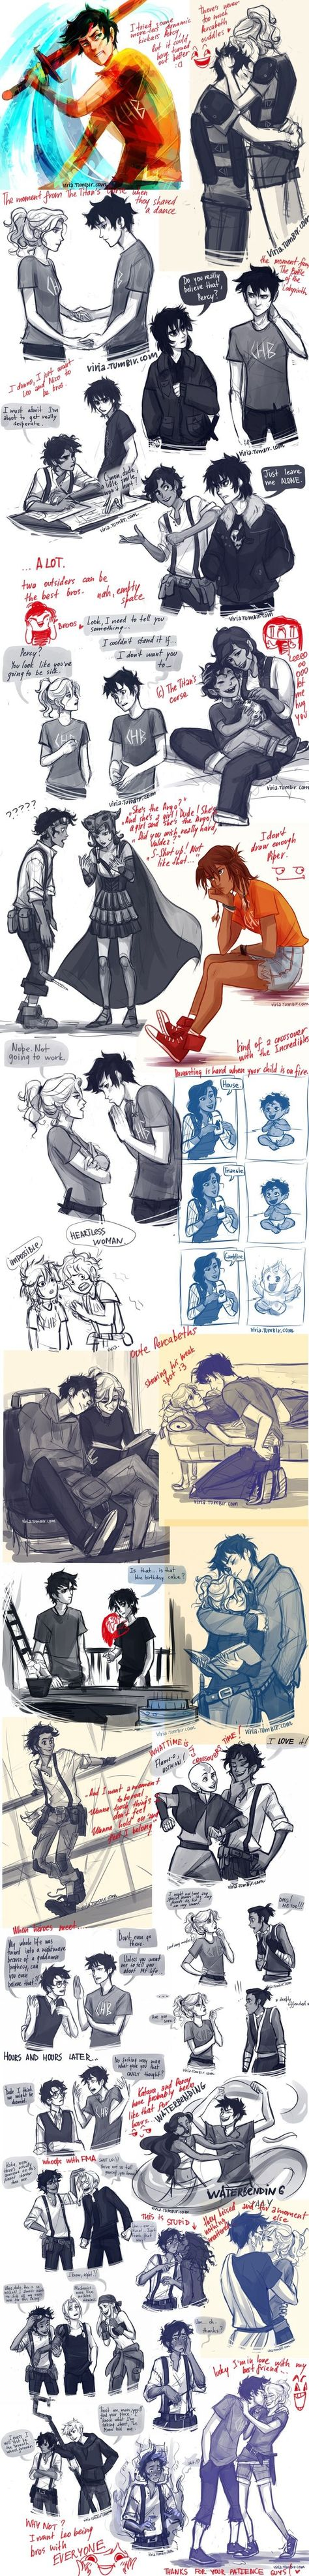 Viria harry potter and percy jackson